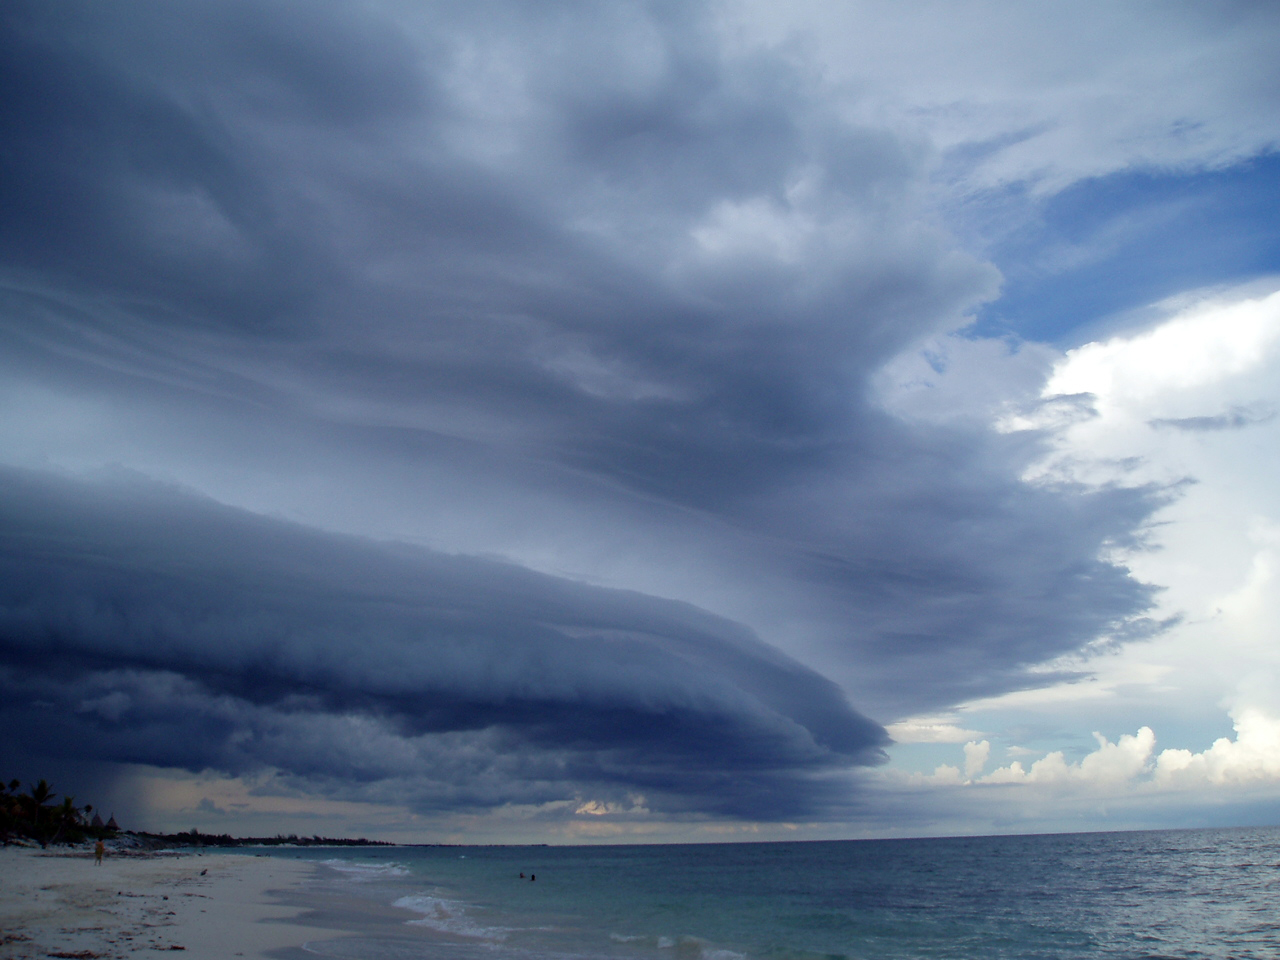 http://upload.wikimedia.org/wikipedia/commons/1/1a/Cloud_over_yucatan_mexico_02.jpg